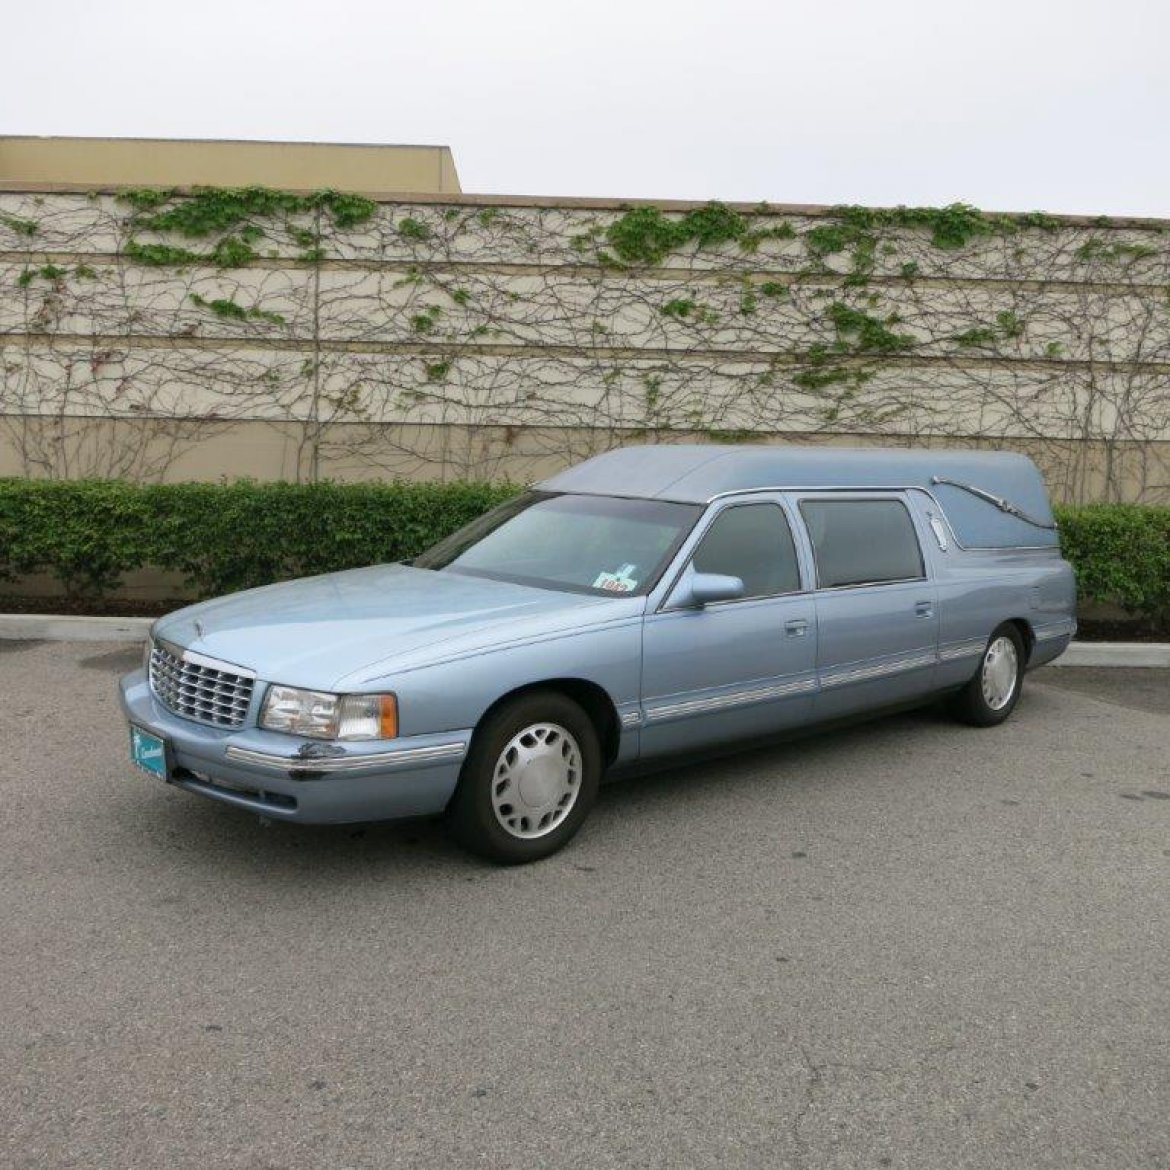 30 Funeral Cars And Hearses For Sale We Sell Limos